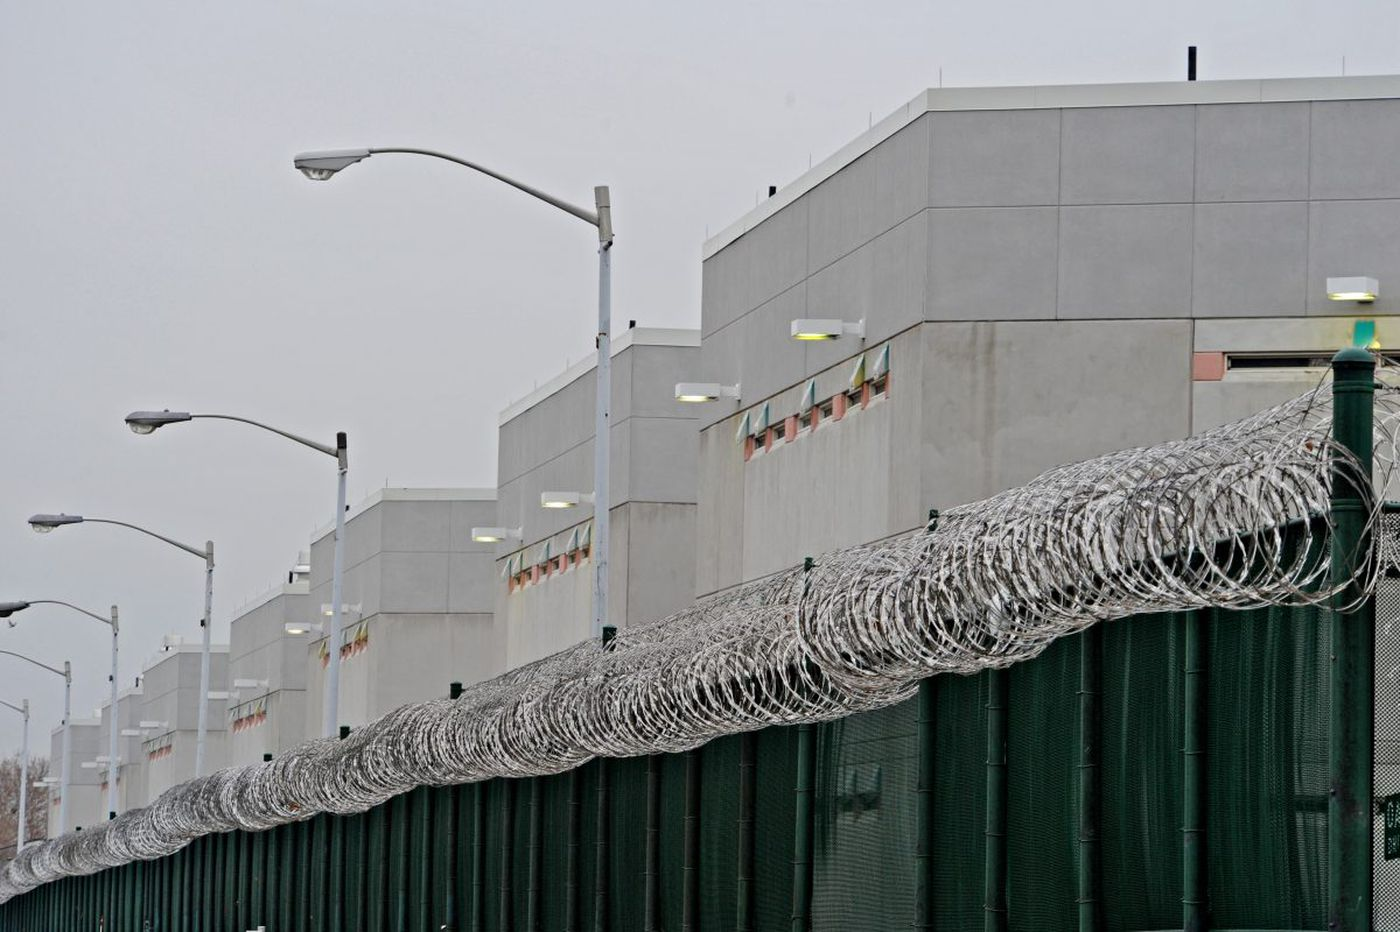 Was shooting by Philadelphia prison guard result of lax security?